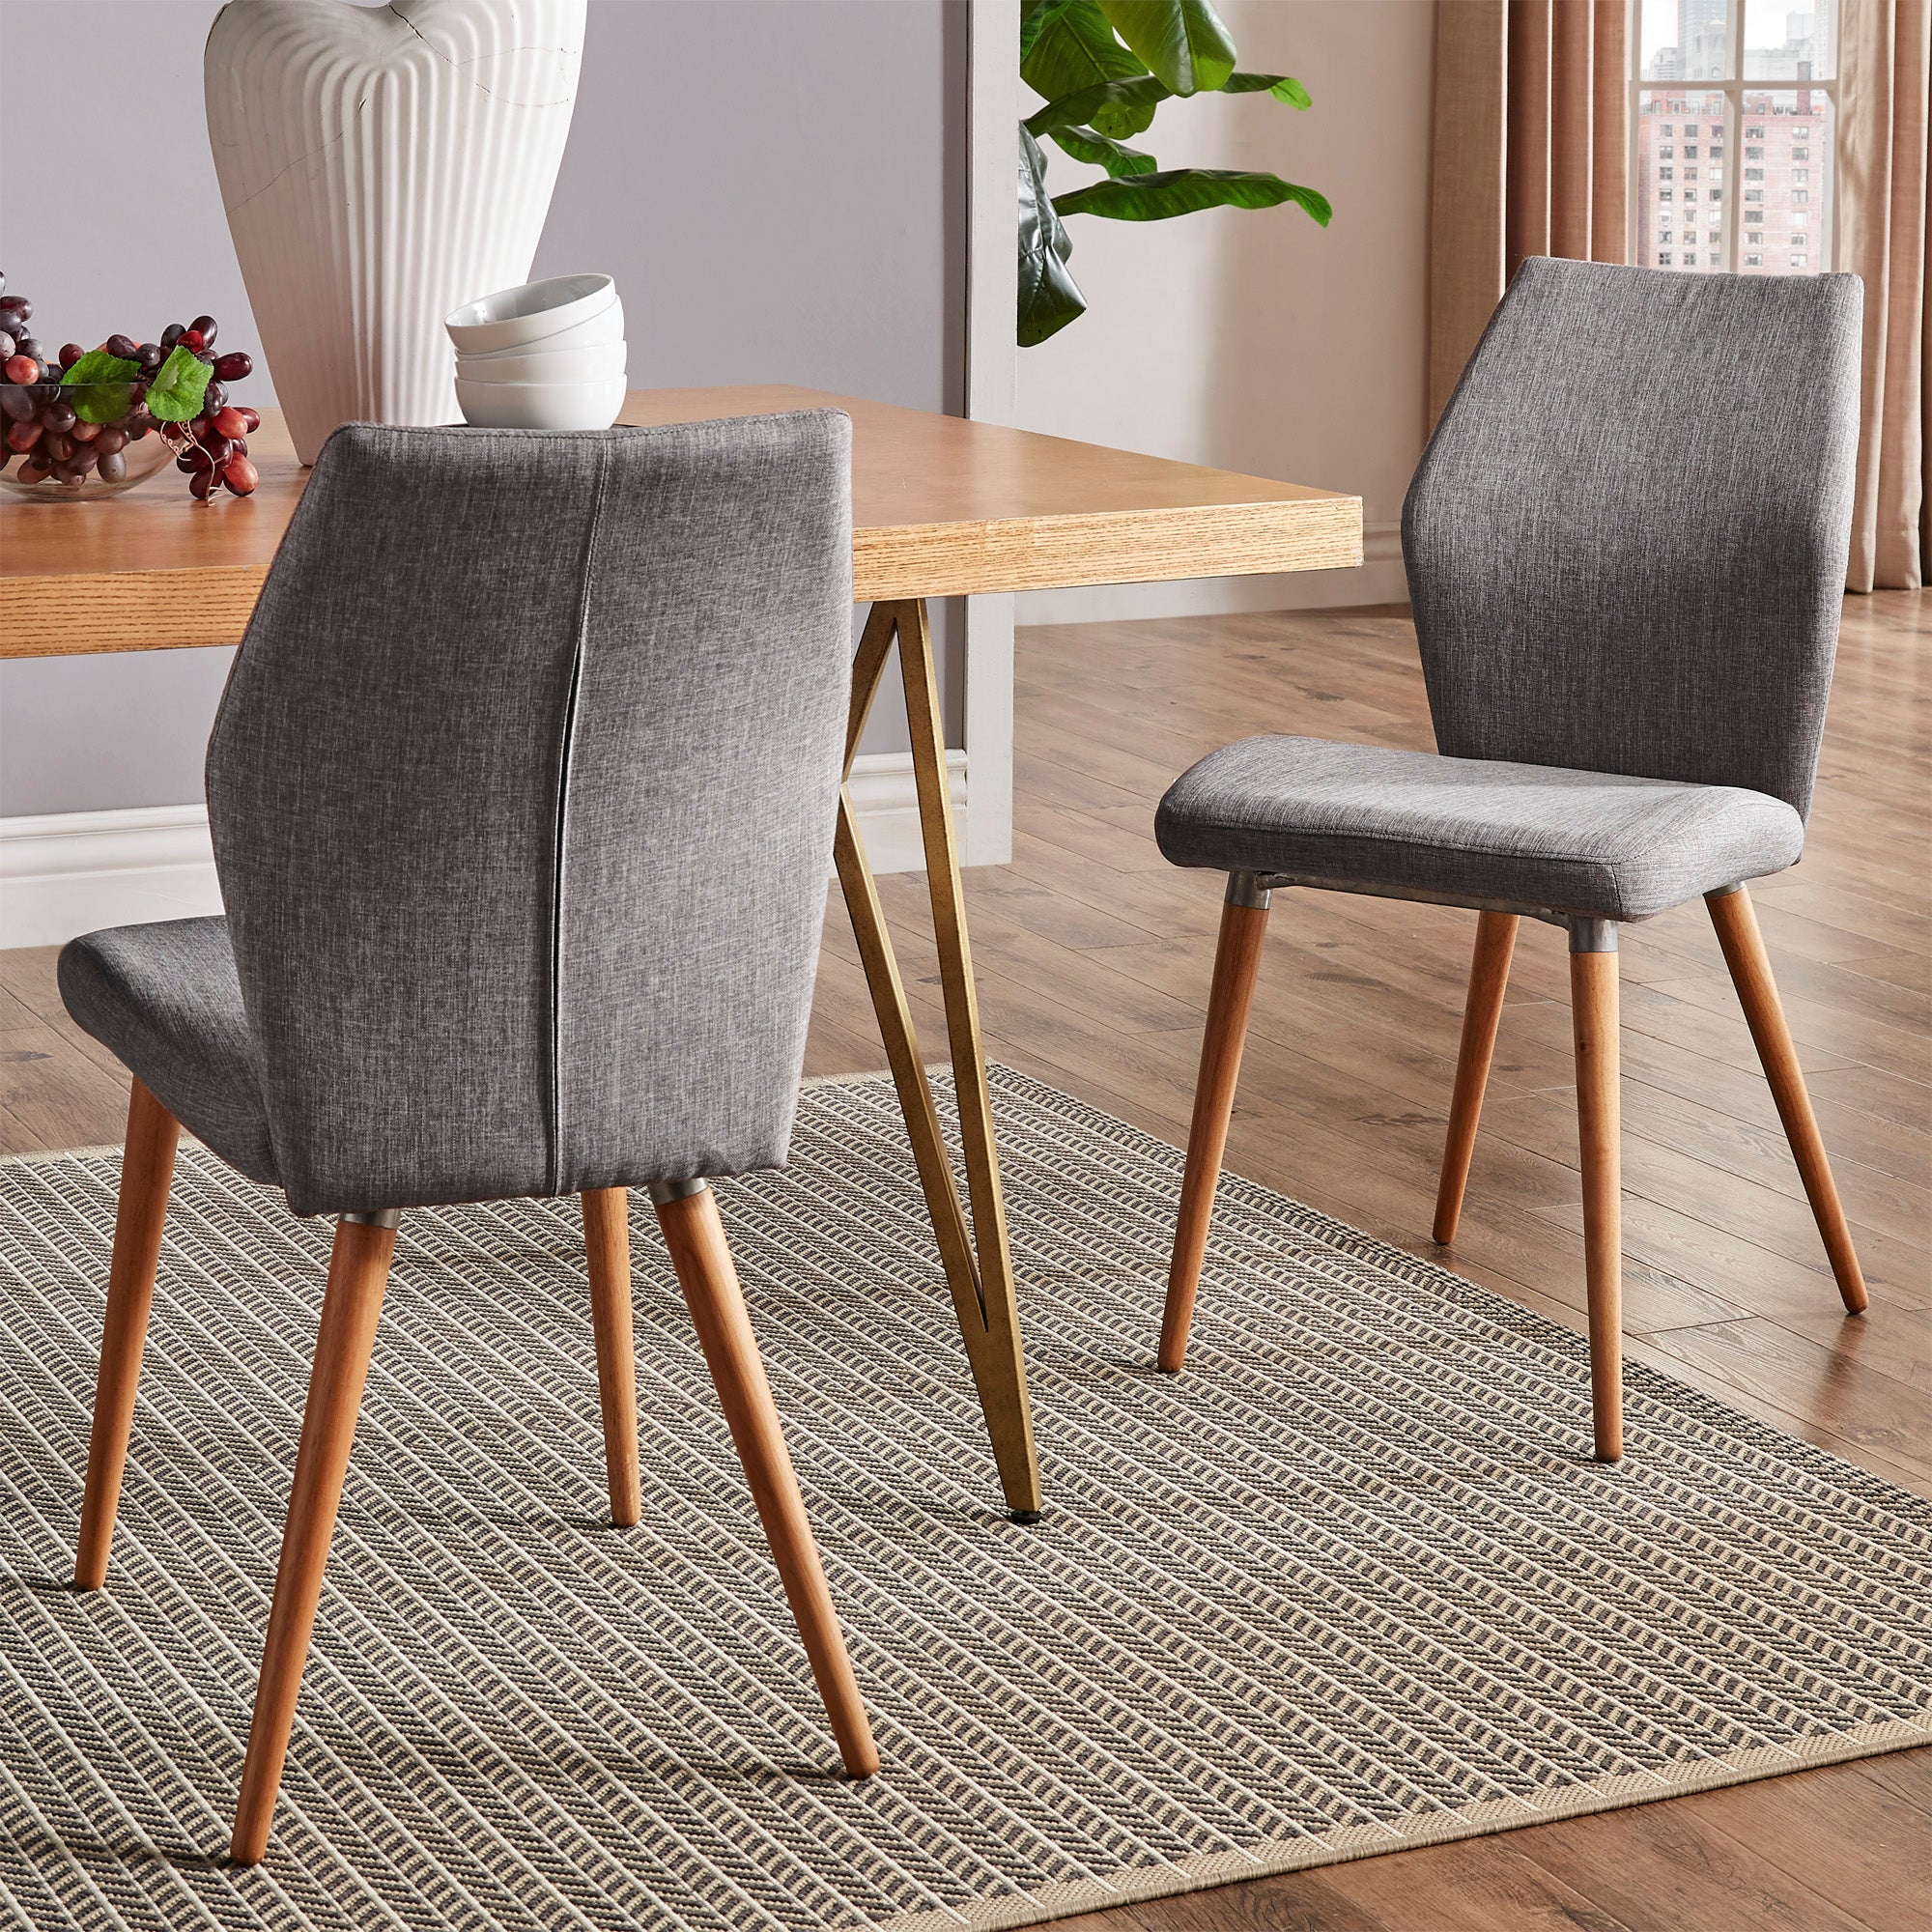 Contoured Upholstered Dining Chairs (Set of 2) - Grey Linen, Light Oak Finish